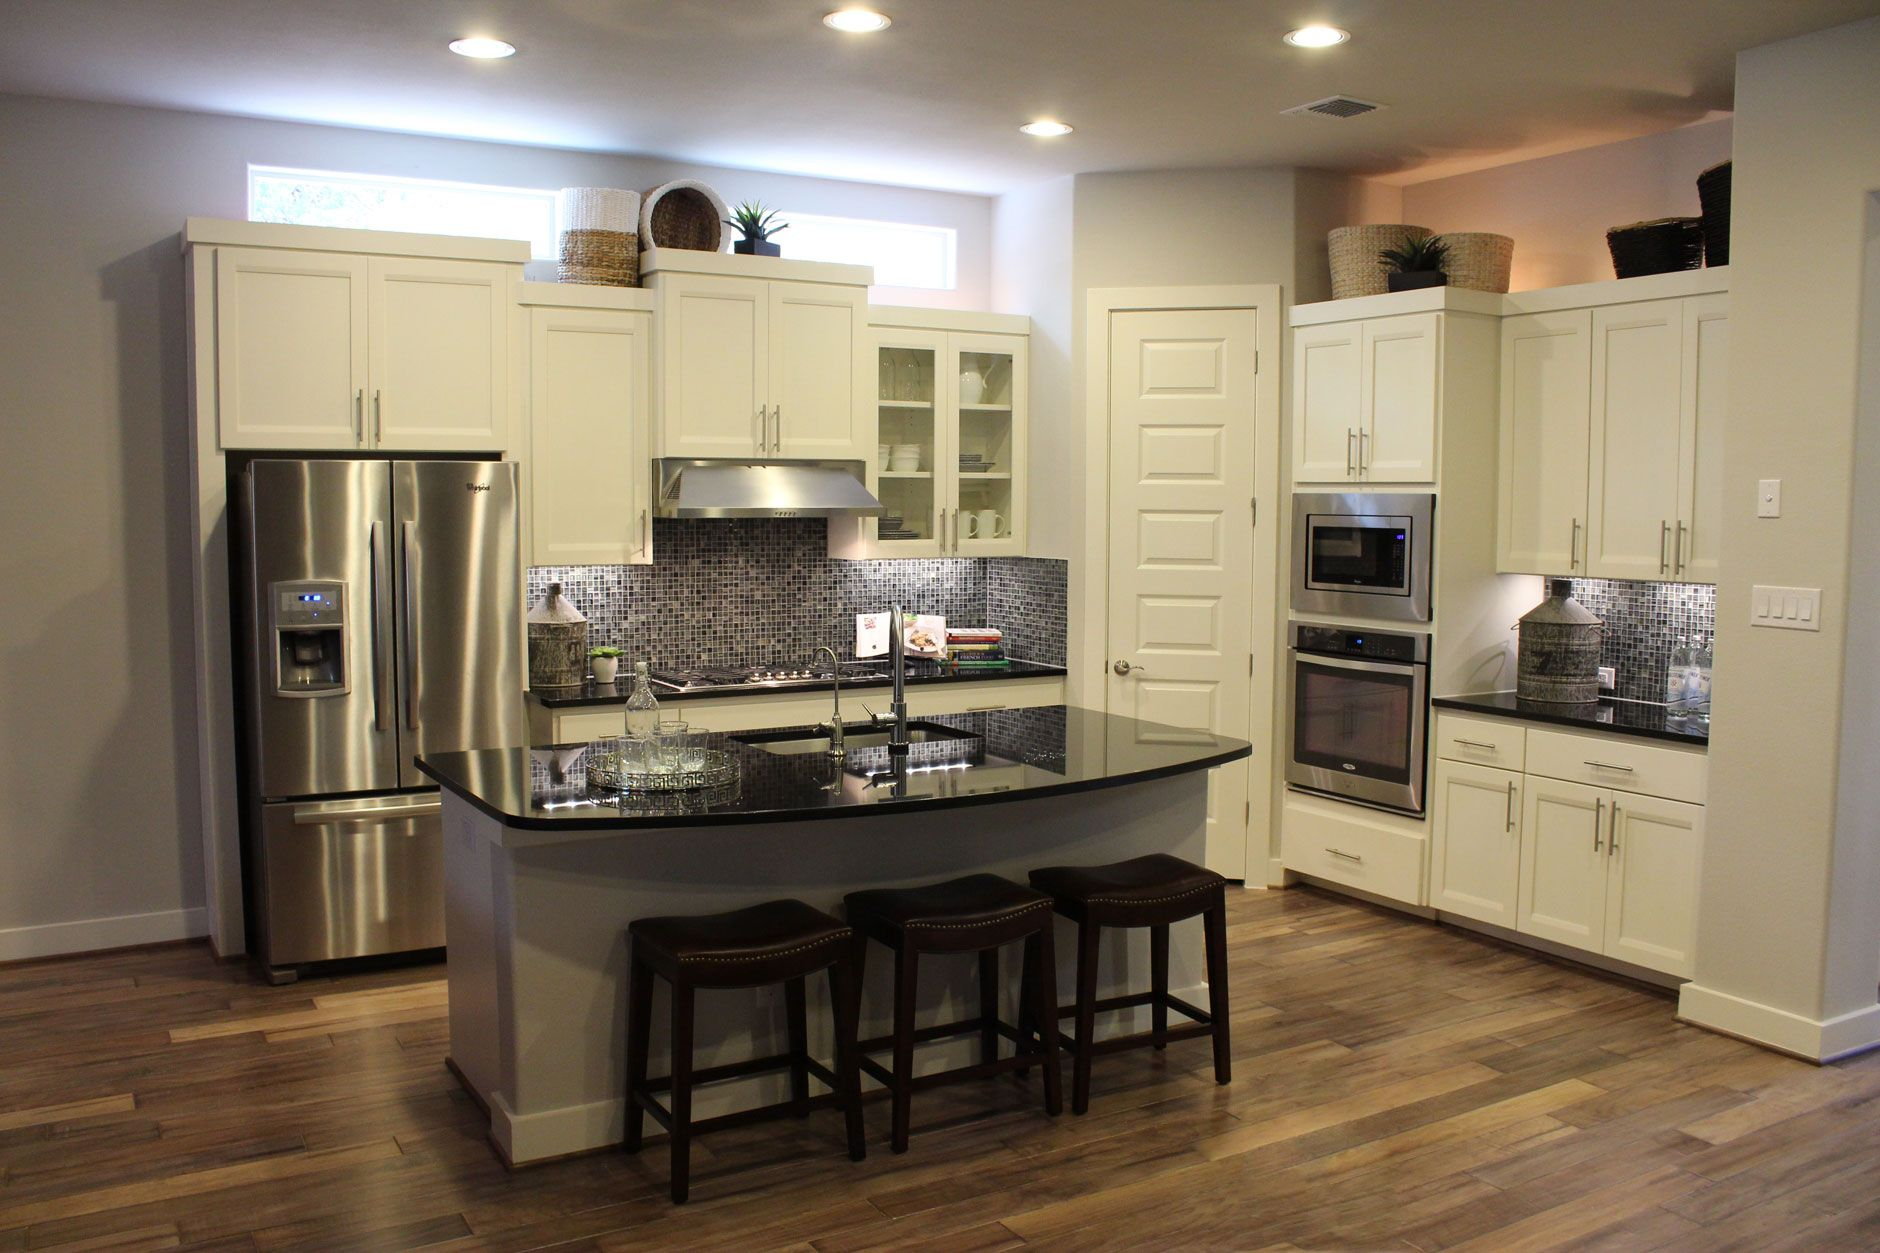 How To Choose Flooring That Compliments Cabinet Color U2013 Burrows Cabinets U2013 Central  Texas Builder Direct Custom Cabinets